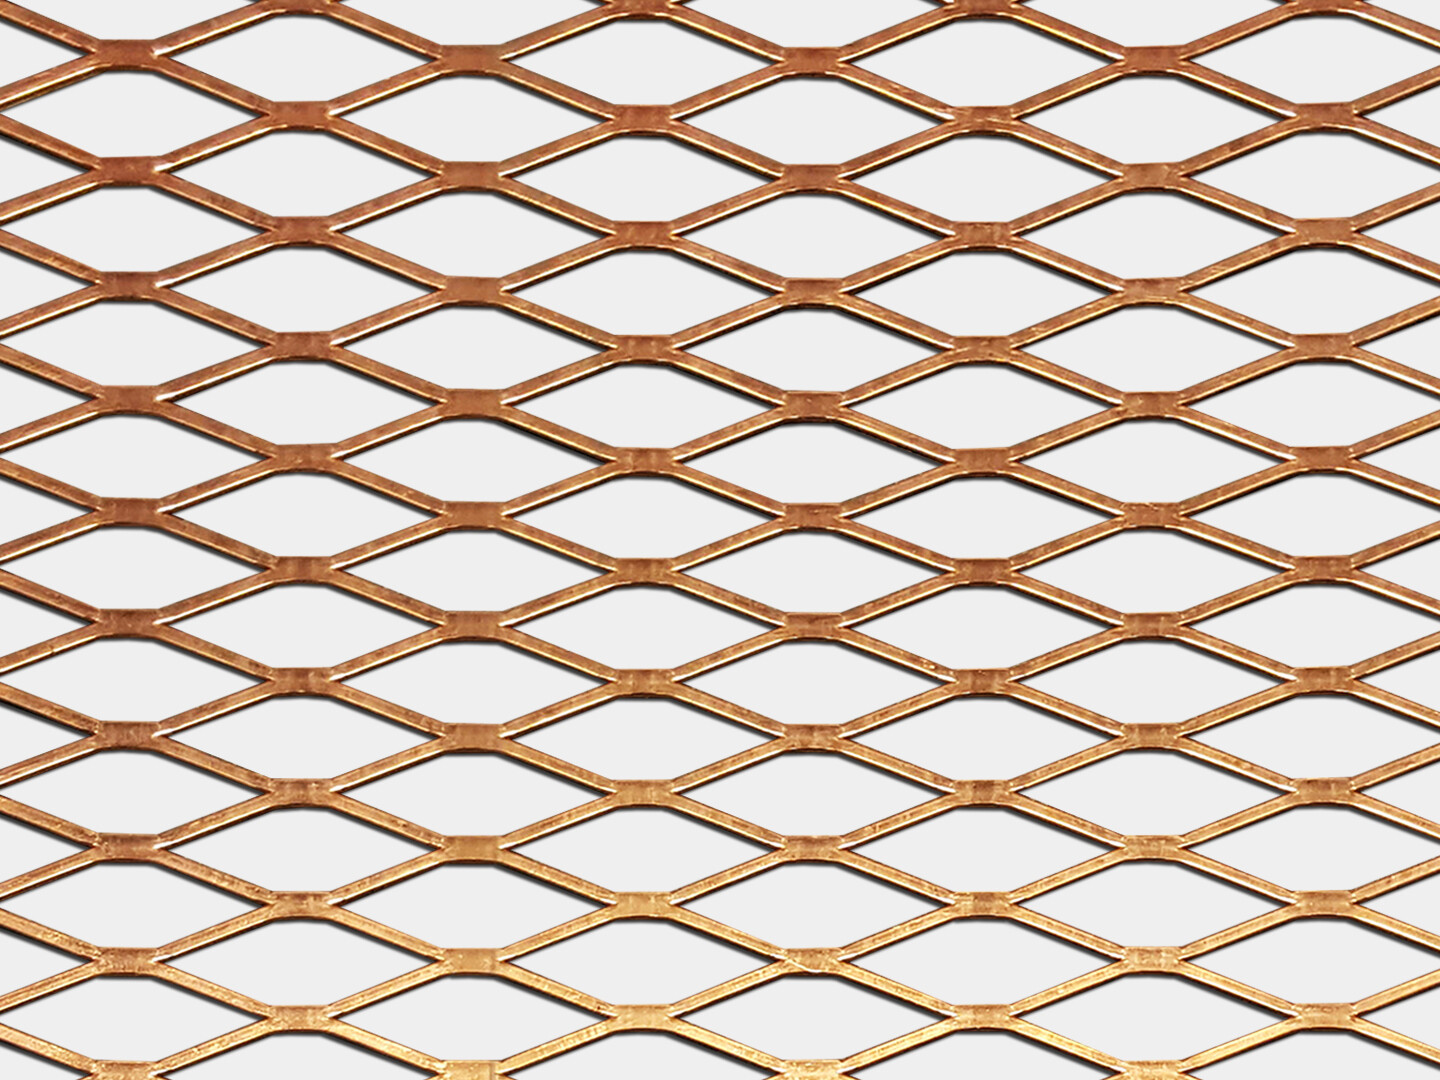 Expanded Copper Metal Screen Sheets and Coil